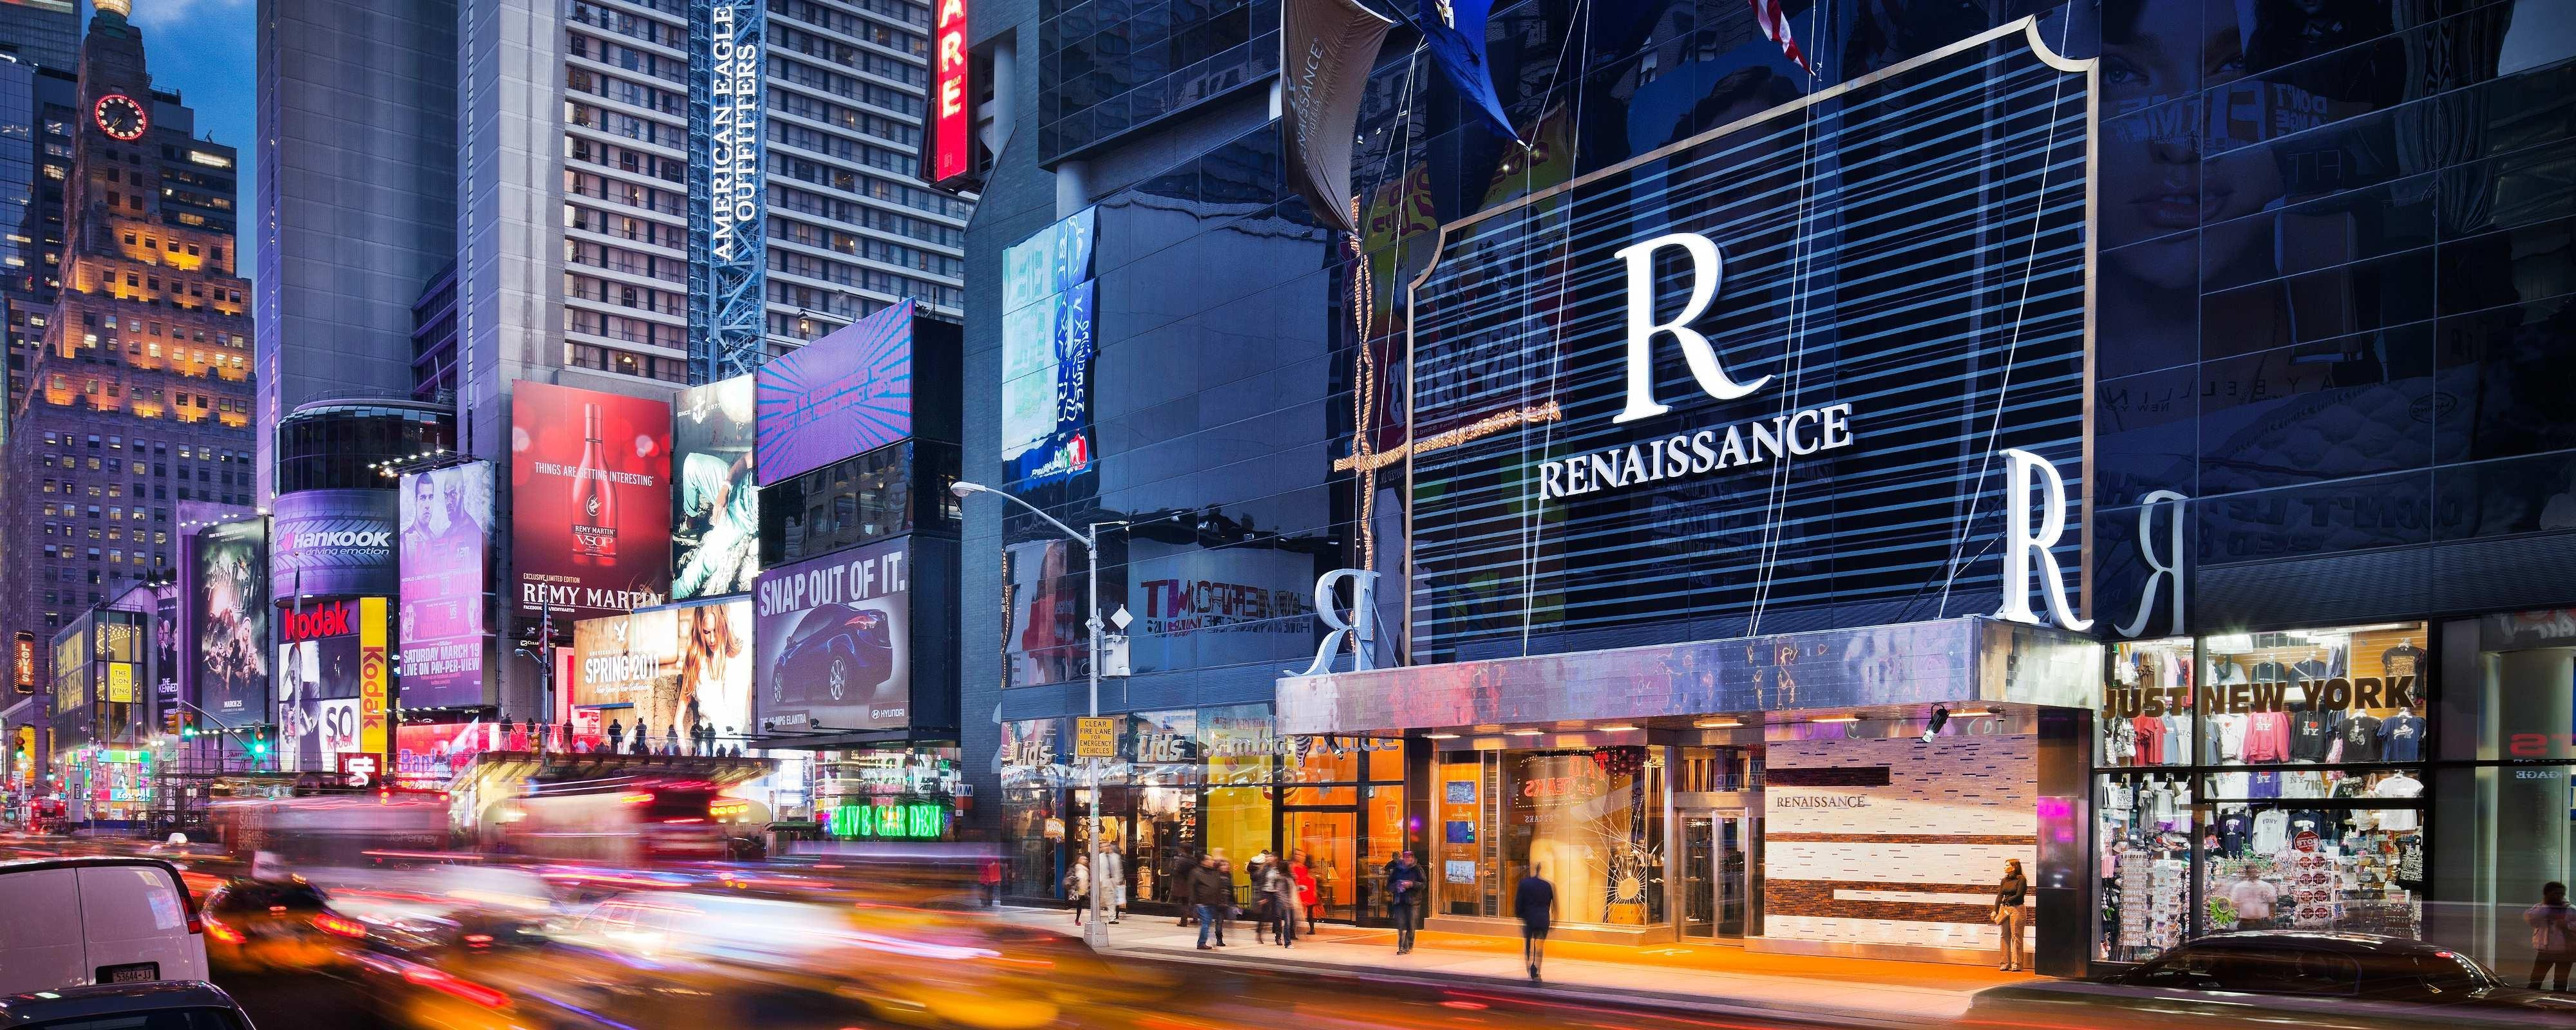 Times Square Boutique Hotel Nyc Renaissance New York